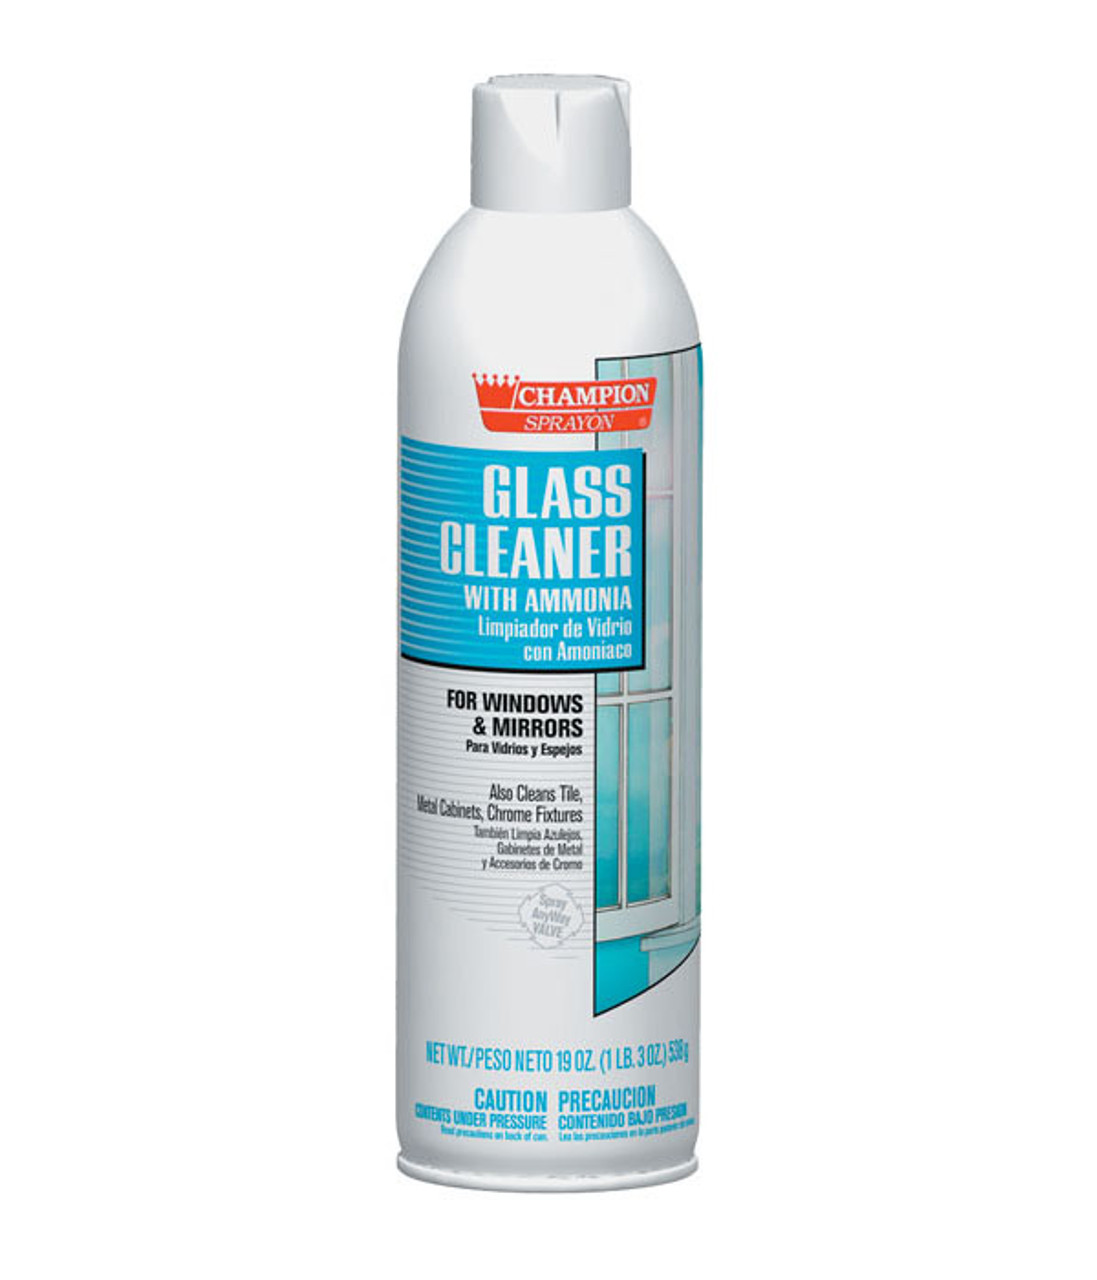 Champion 5151 Foaming Glass Cleaner with Ammonia